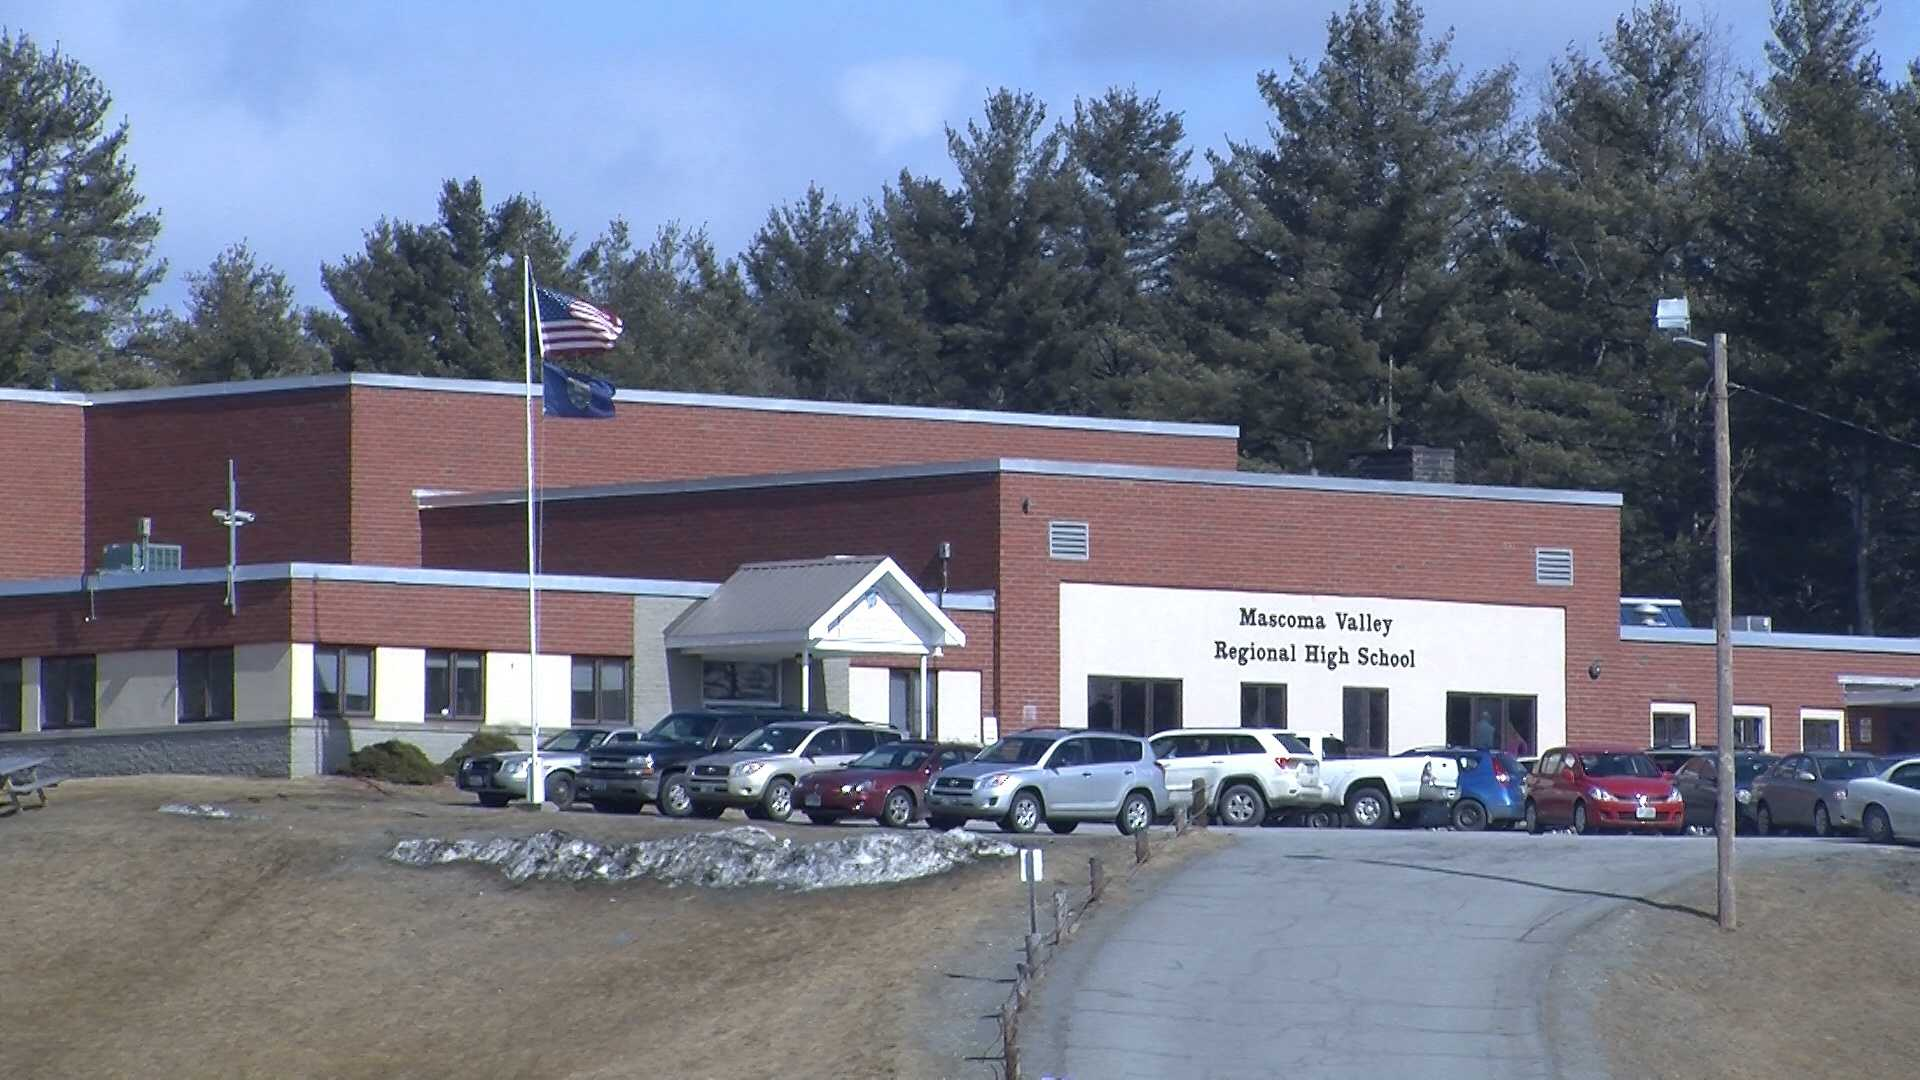 Mascoma Valley High School was built in 1963 and has never been renovated.